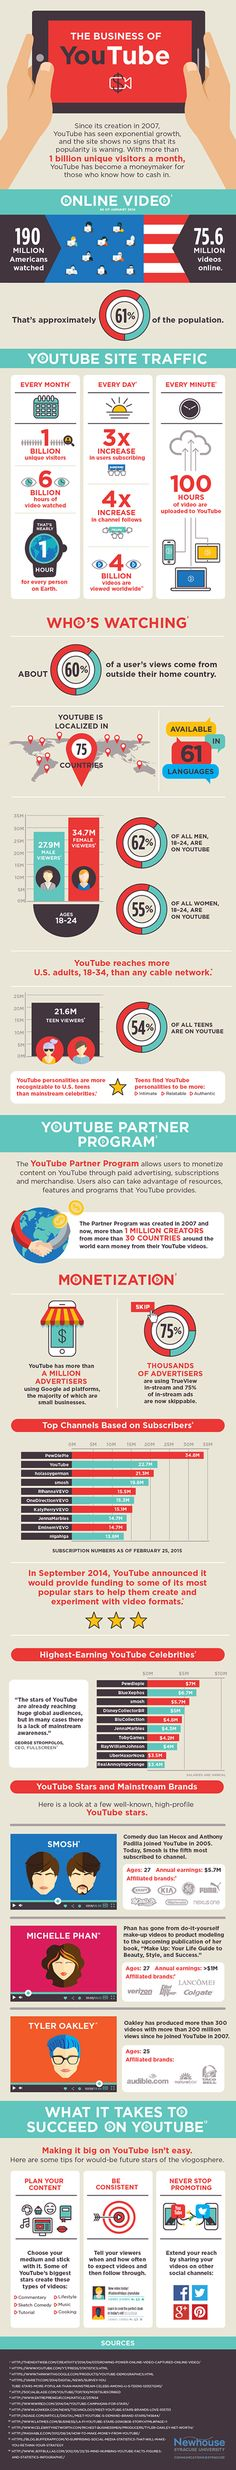 Internet: Infografia. 30 factos surpreendentes sobre o YouTube